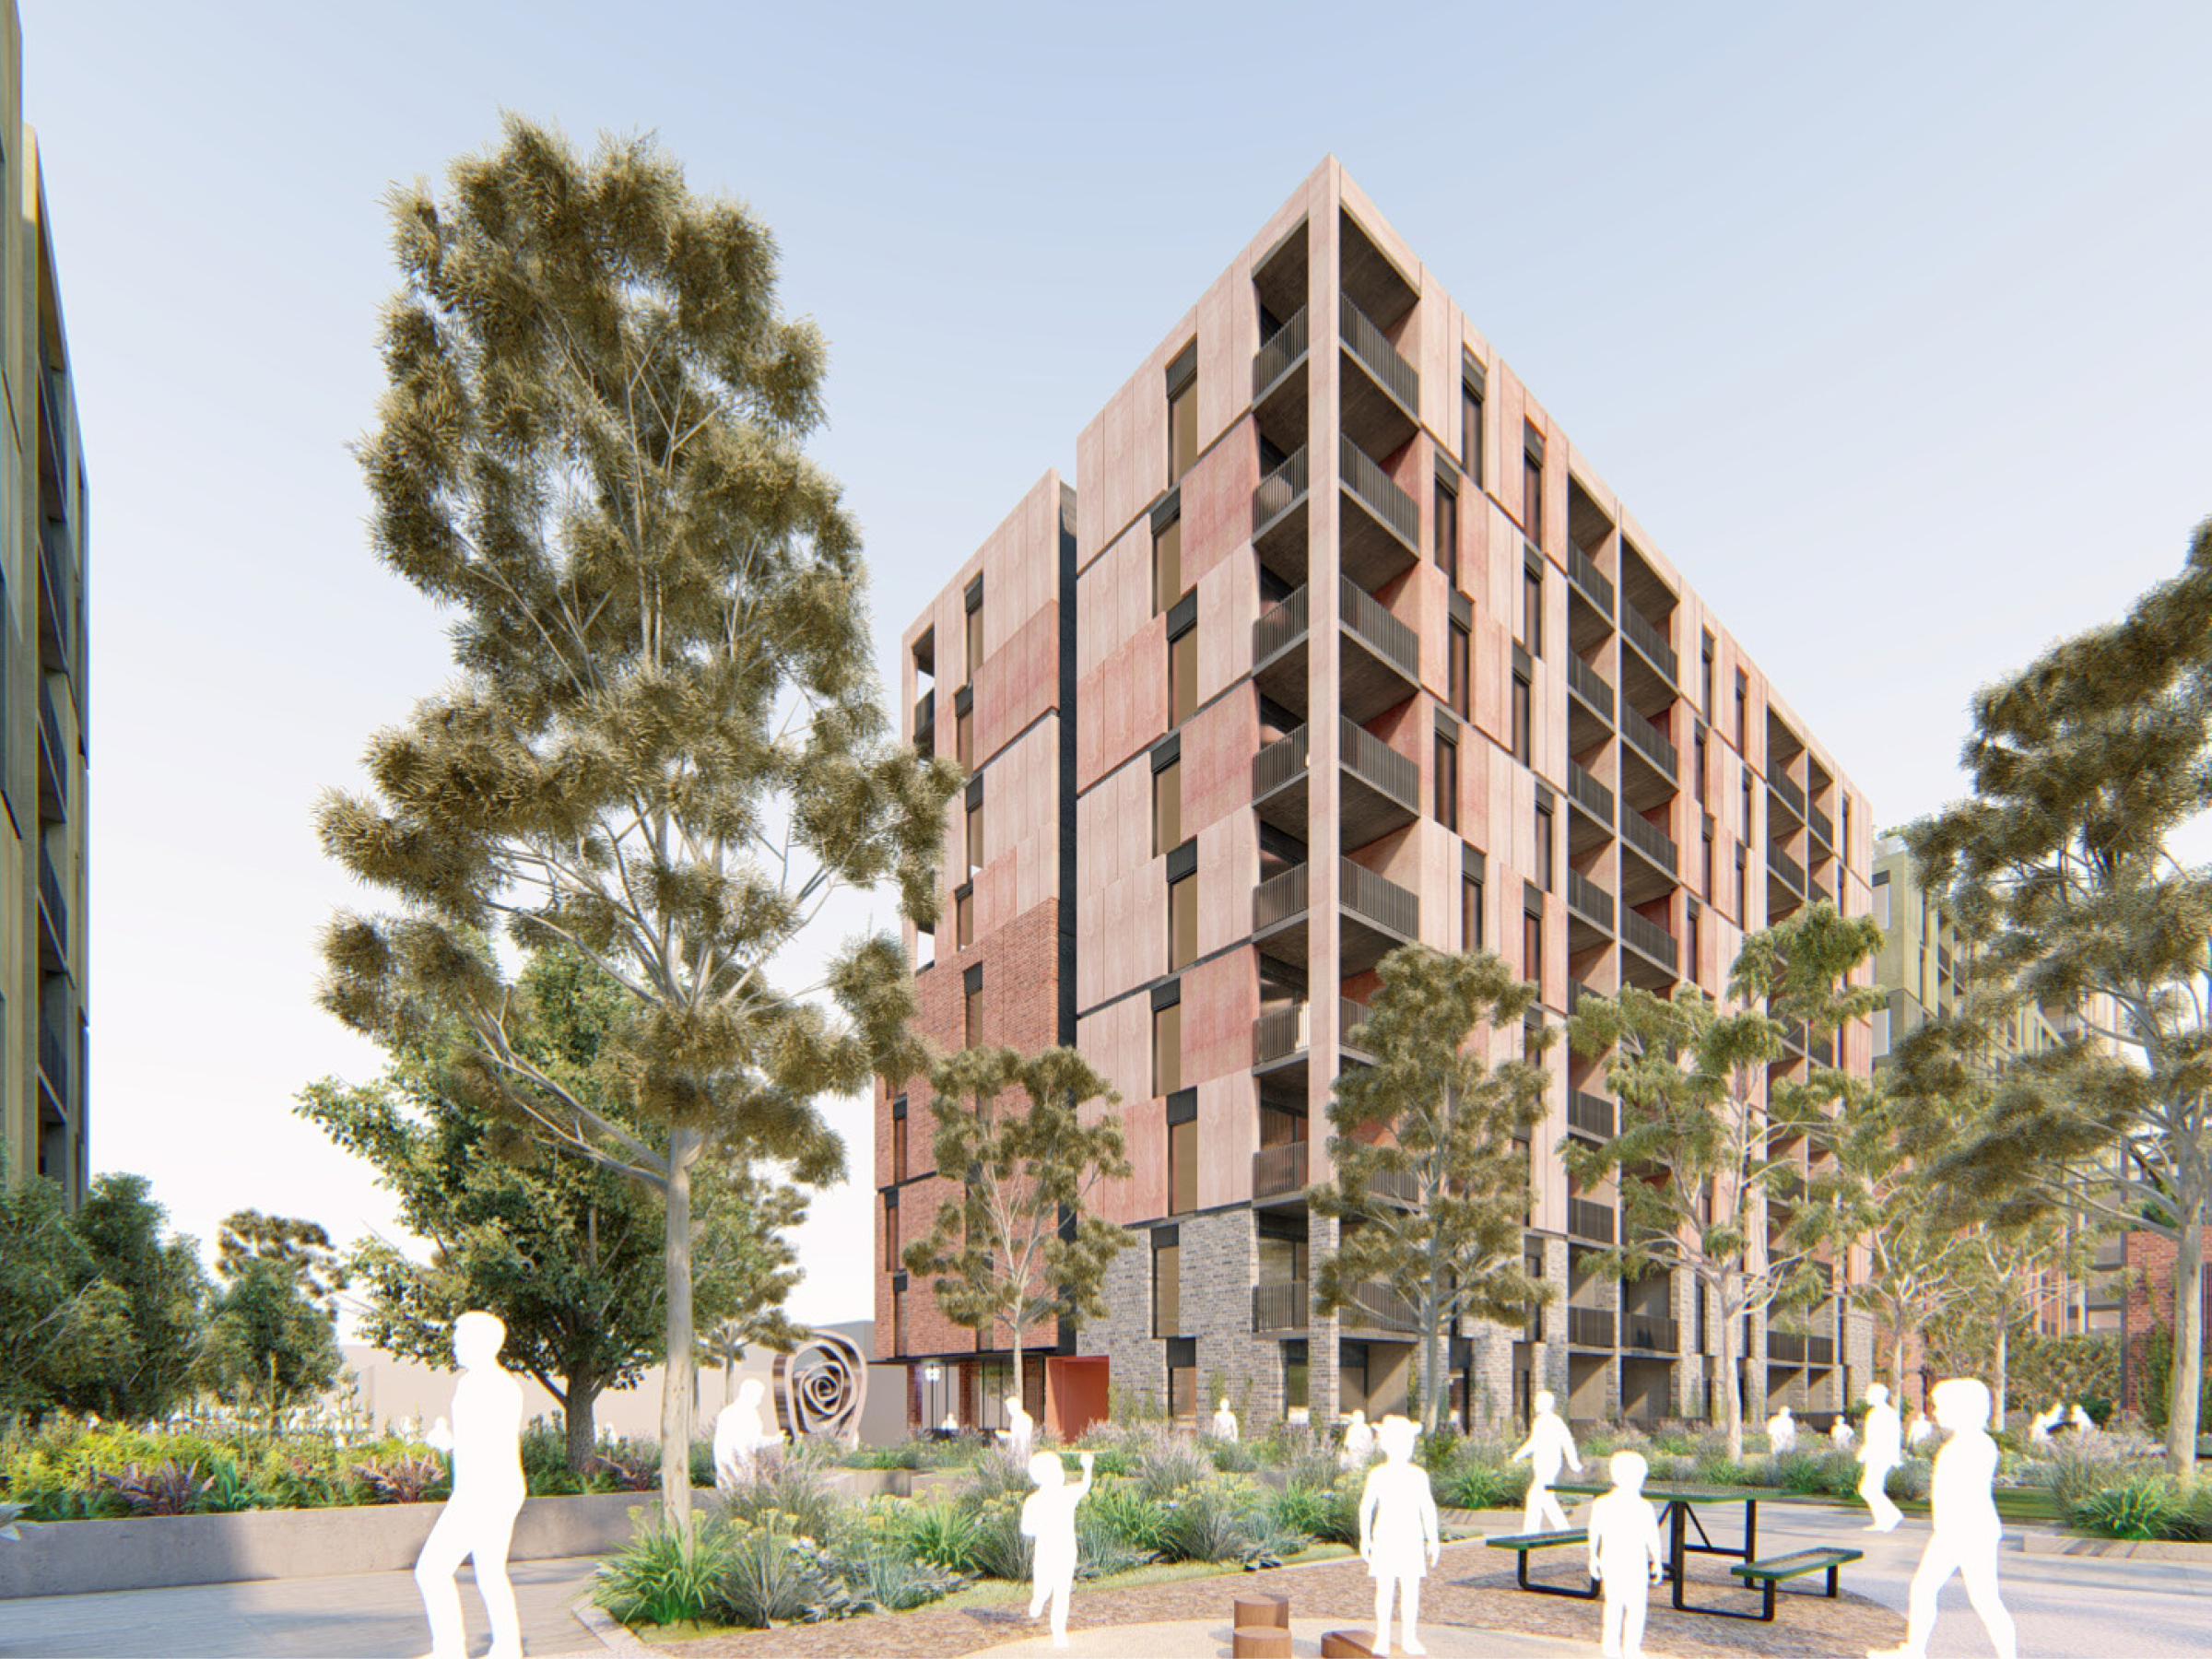 Artist impression looking at the new development from Central Park towards Bangs Street